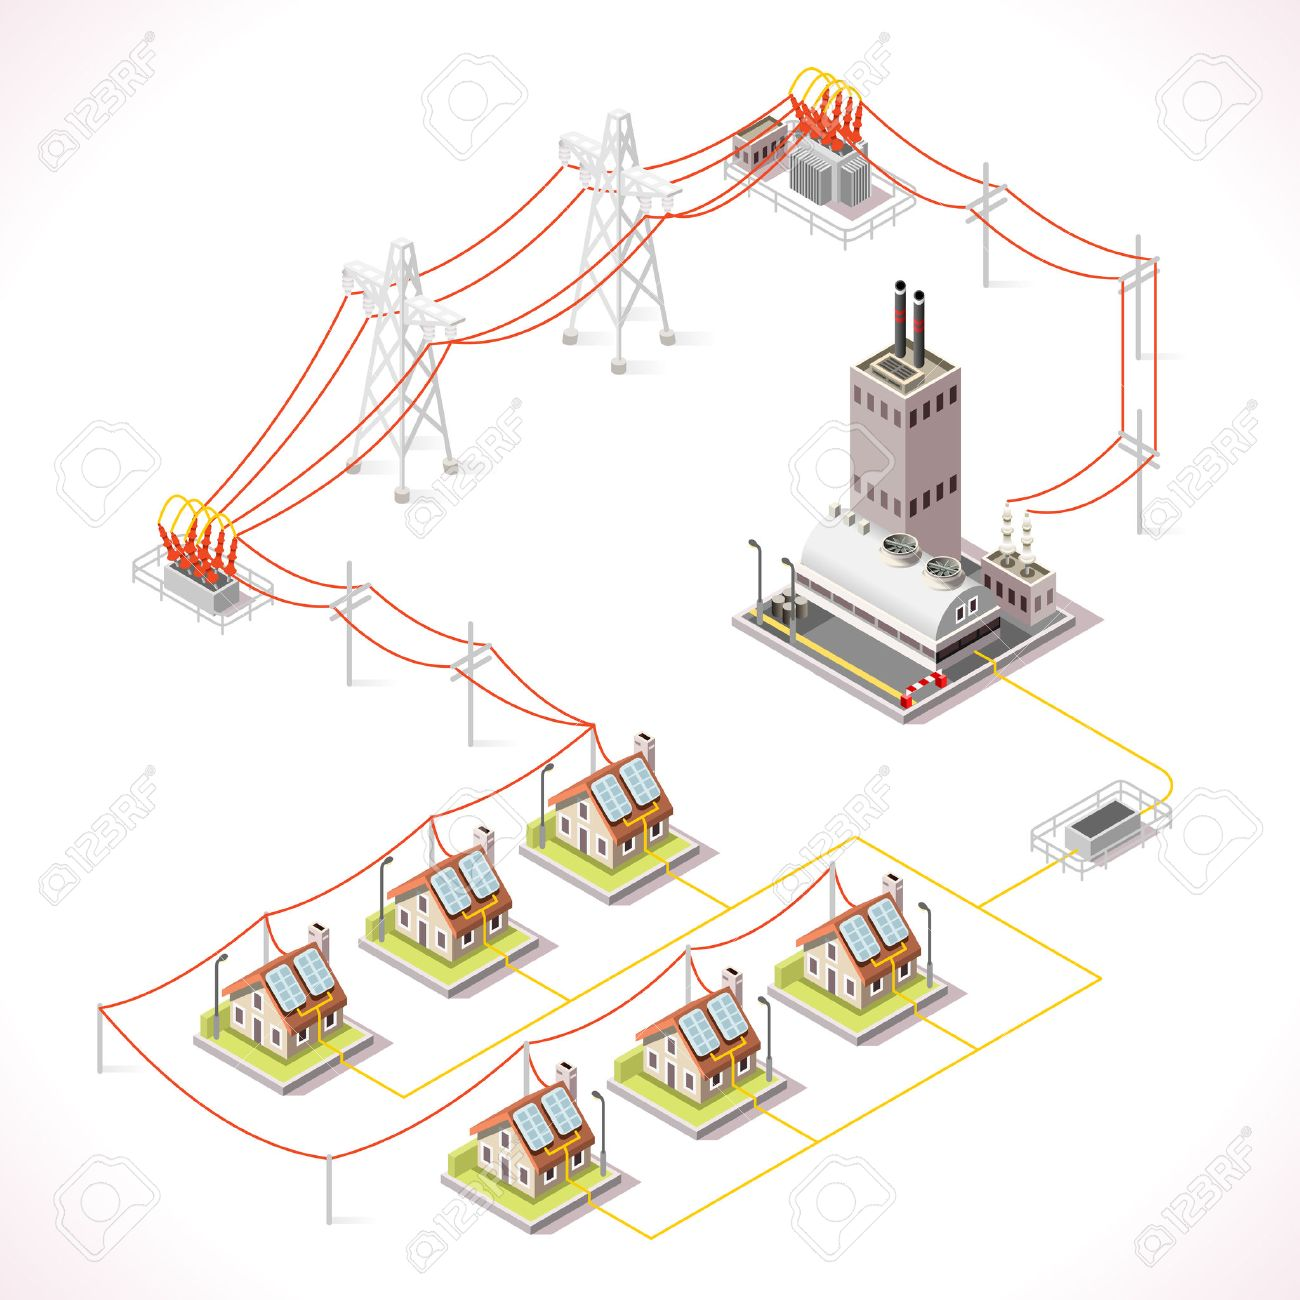 hight resolution of electric energy distribution chain infographic concept isometric 3d electricity grid elements power grid powerhouse providing